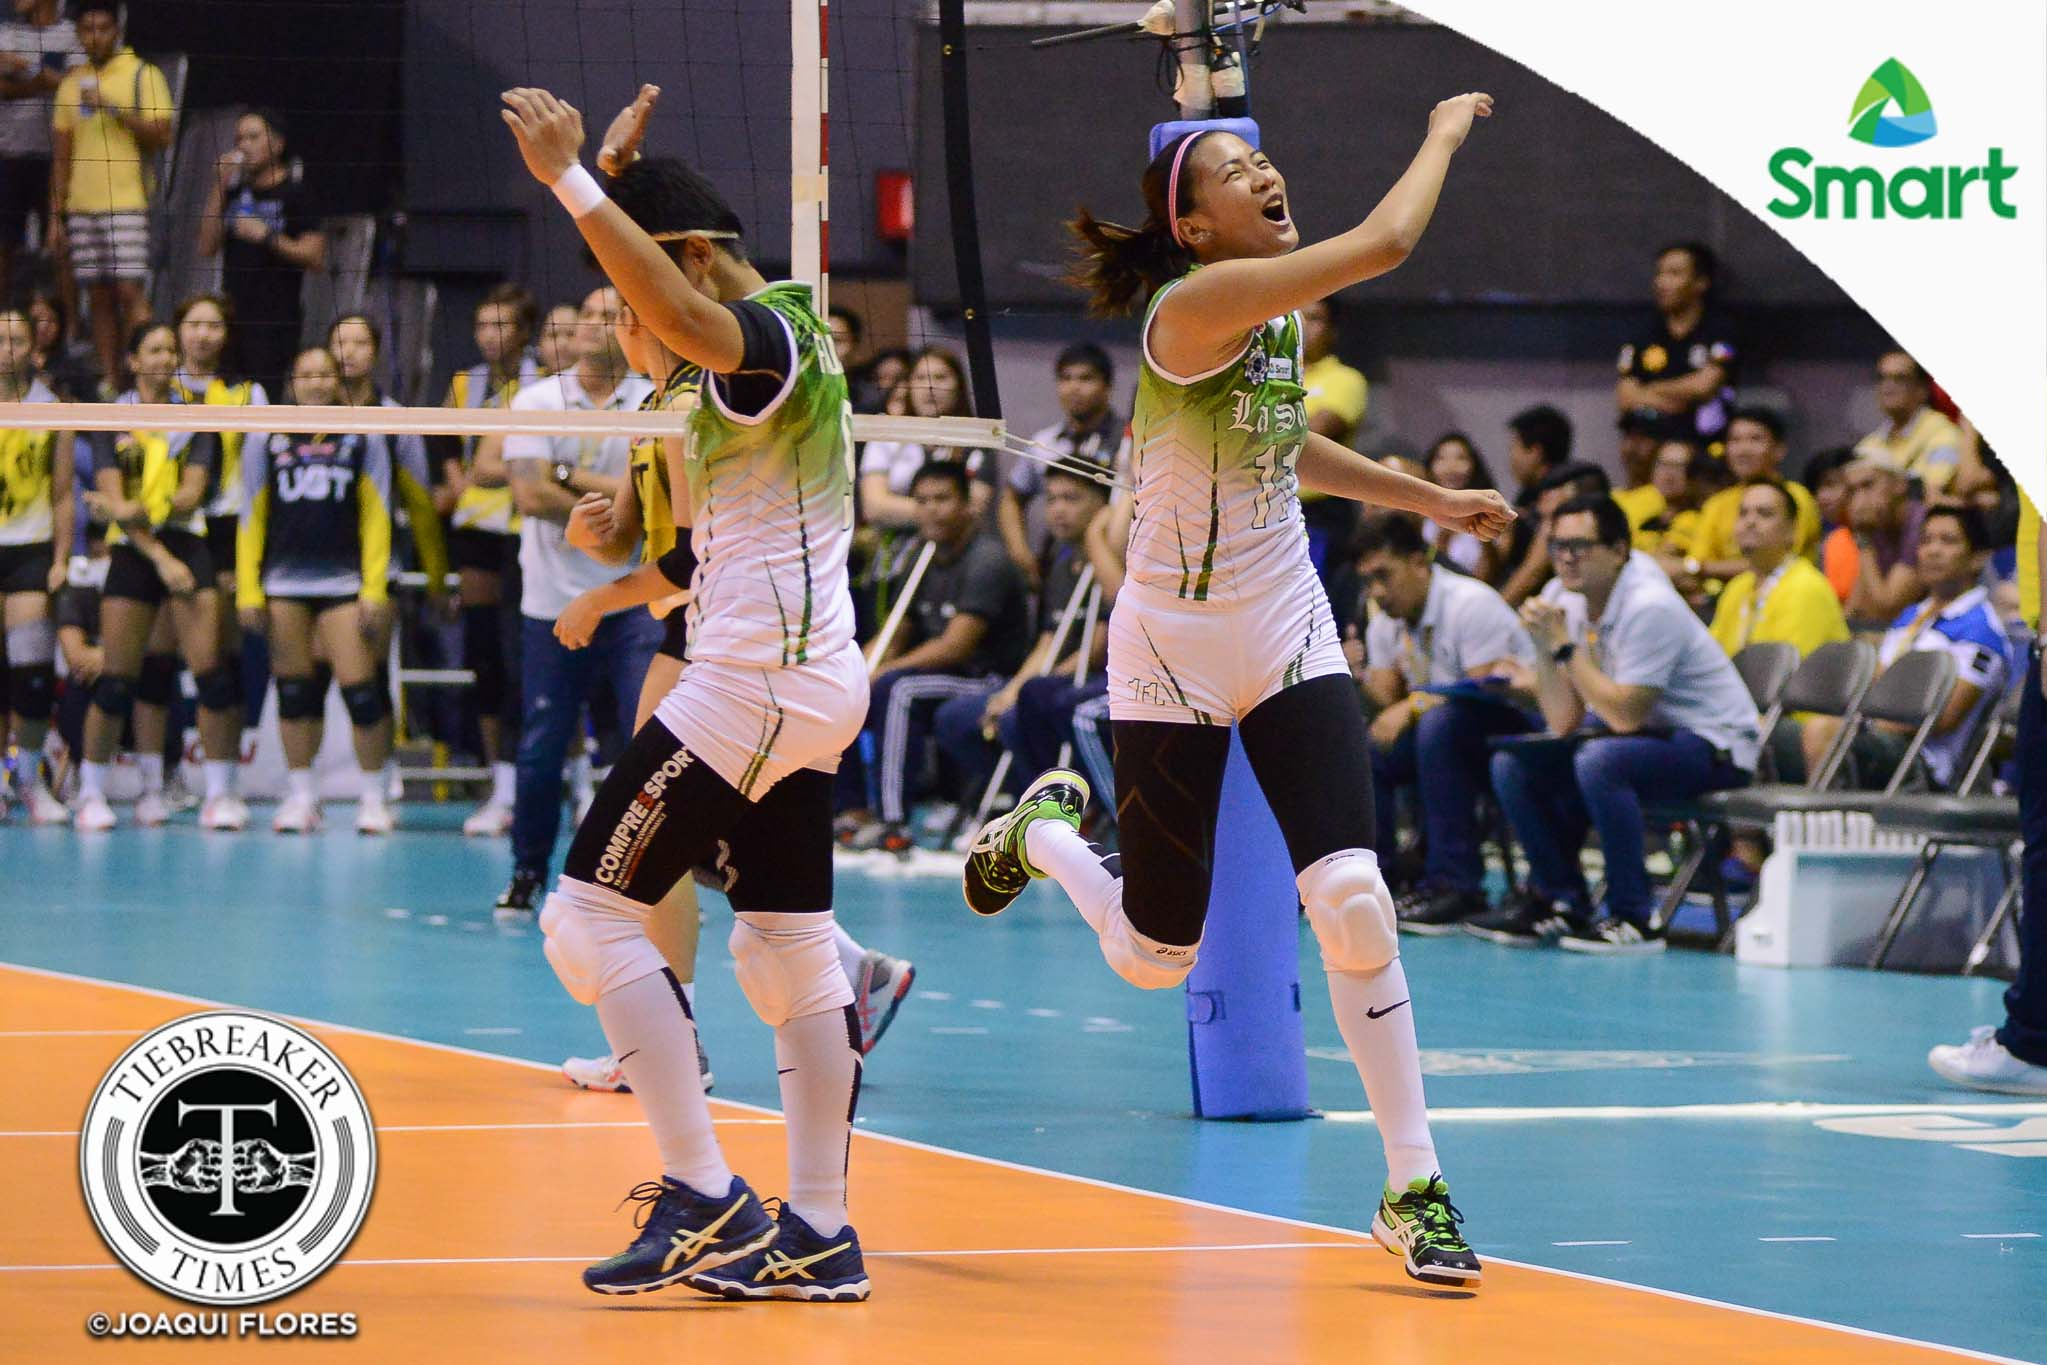 Philippine Sports News - Tiebreaker Times La Salle barges into ninth straight Finals, douses UST DLSU News UAAP UST Volleyball  UST Women's Volleyball UAAP Season 79 Women's Volleyball UAAP Season 79 Tine Tiamzon Ria Meneses Ramil De Jesus Majoy Baron Kungfu Reyes Kim Fajardo Kim Dy EJ Laure DLSU Women's Volleyball Dawn Macandili Cherry Rondina